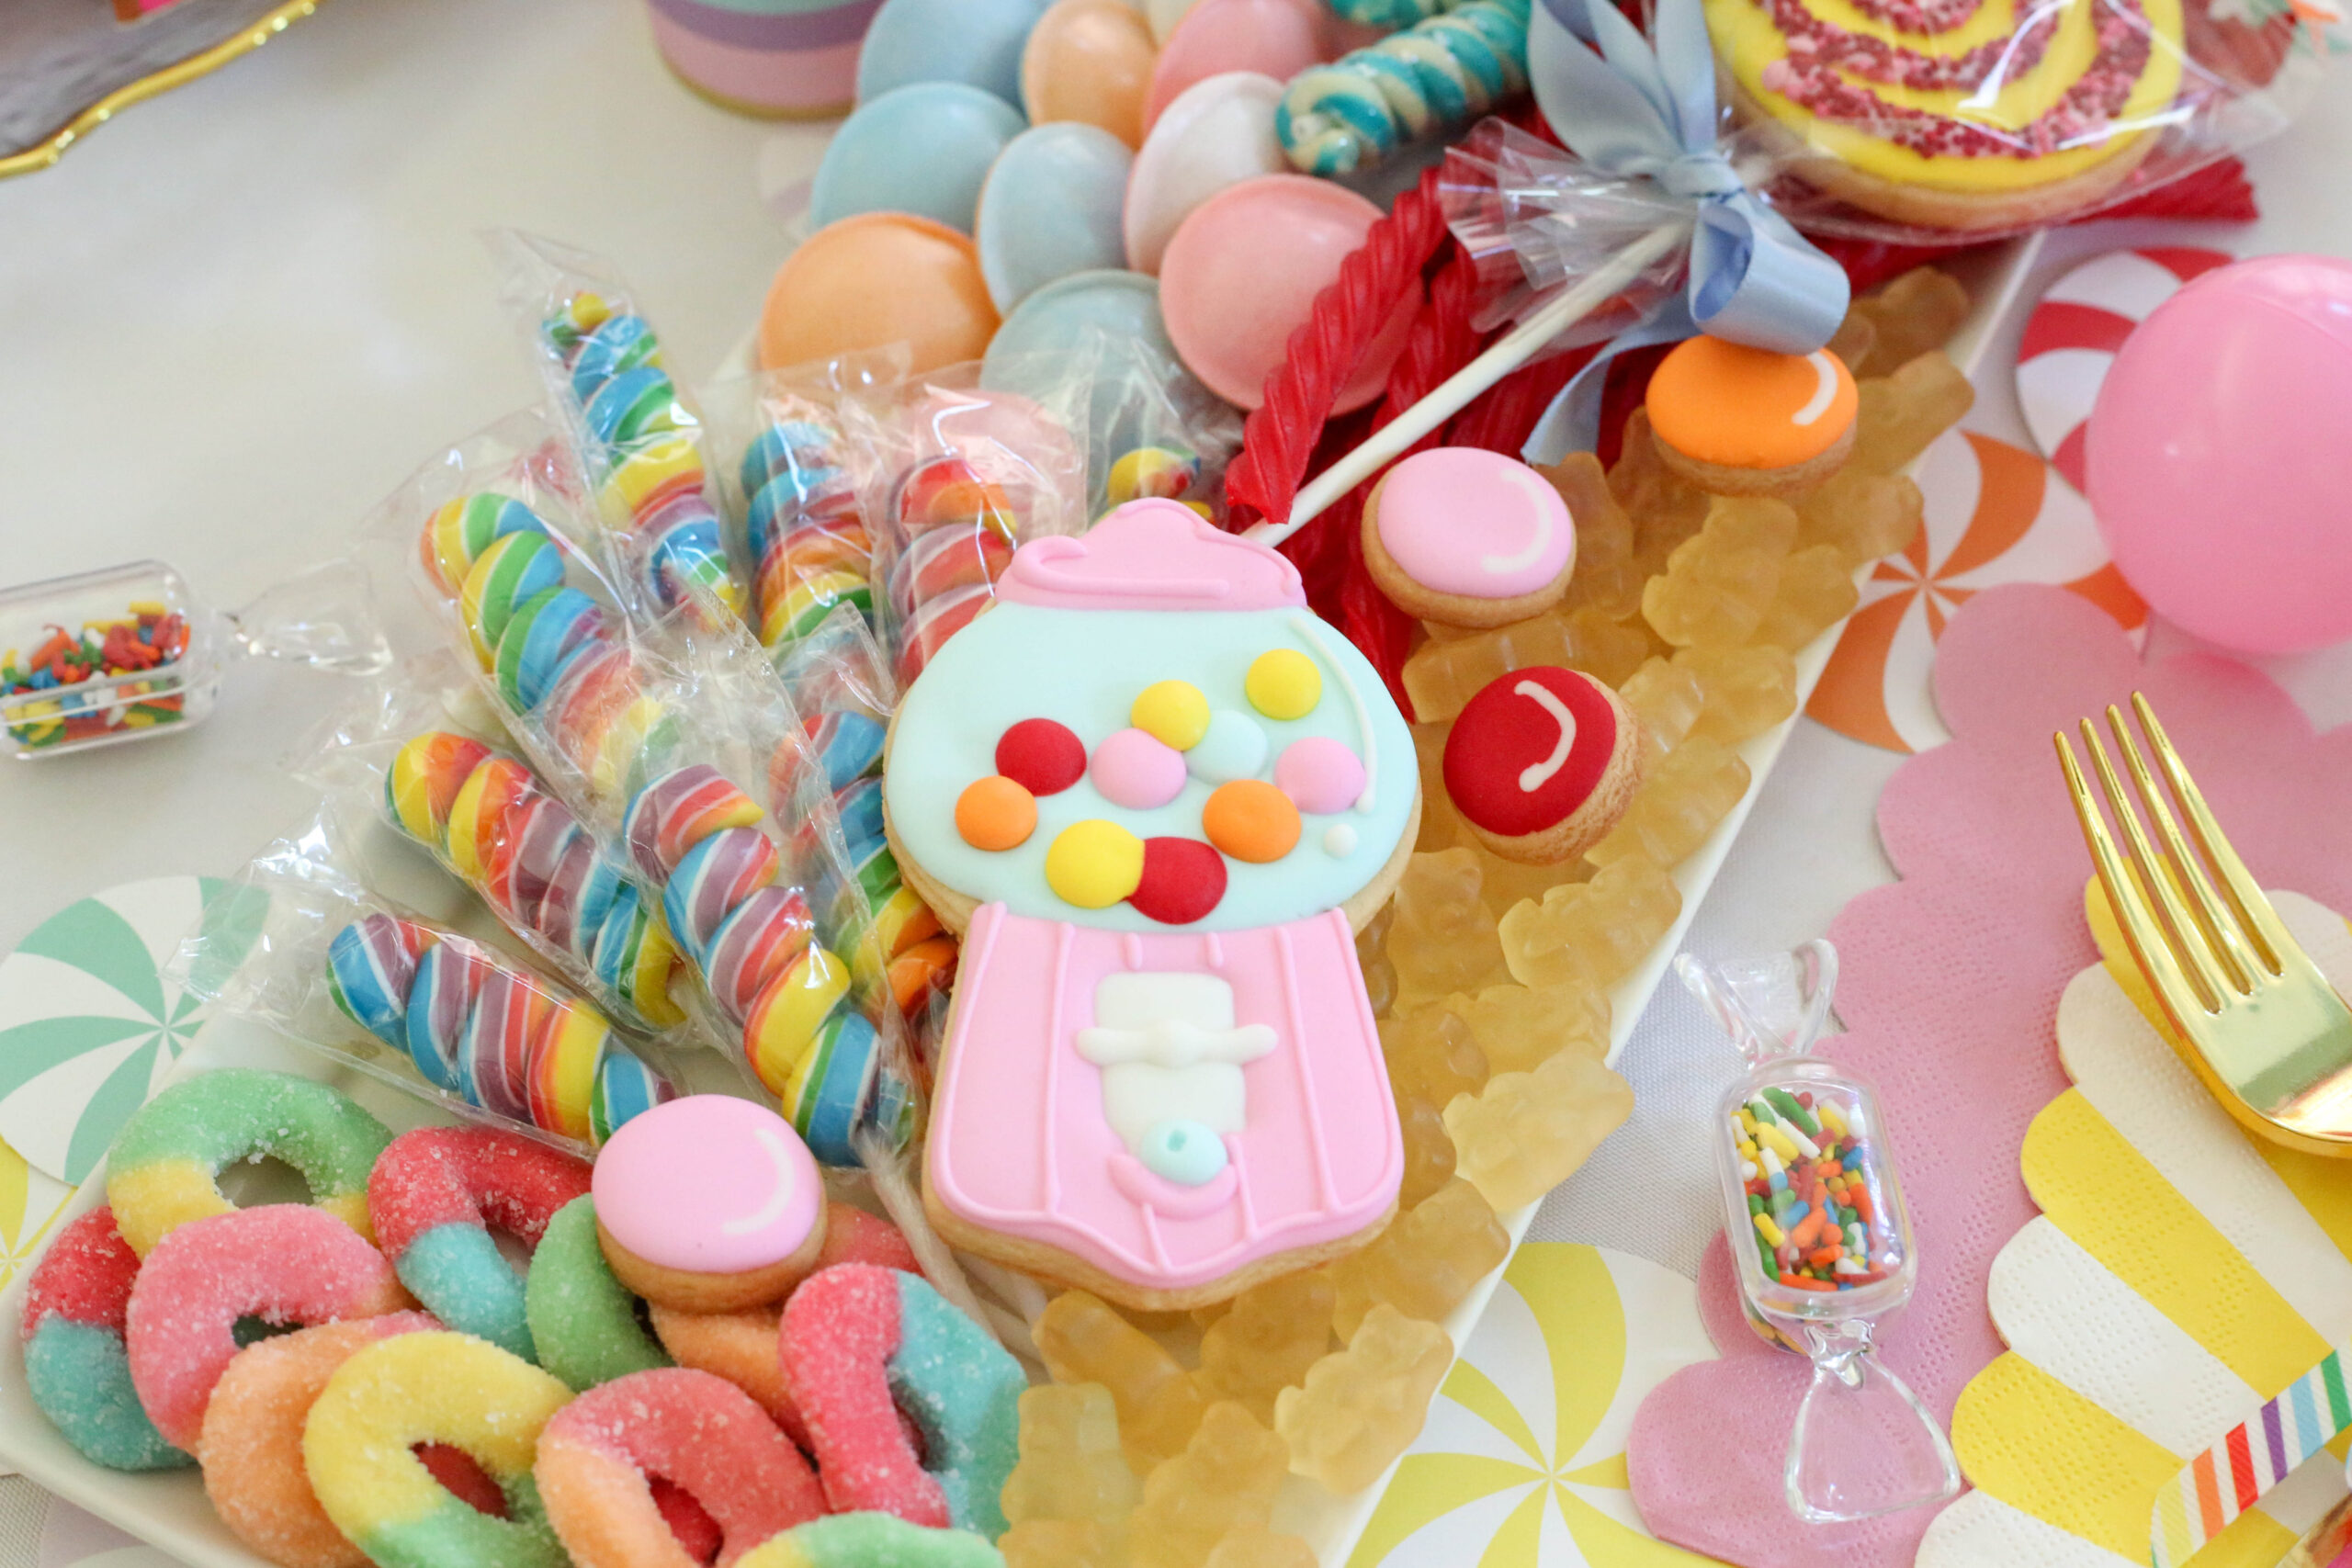 gumball machine cookie on candy charcuterie